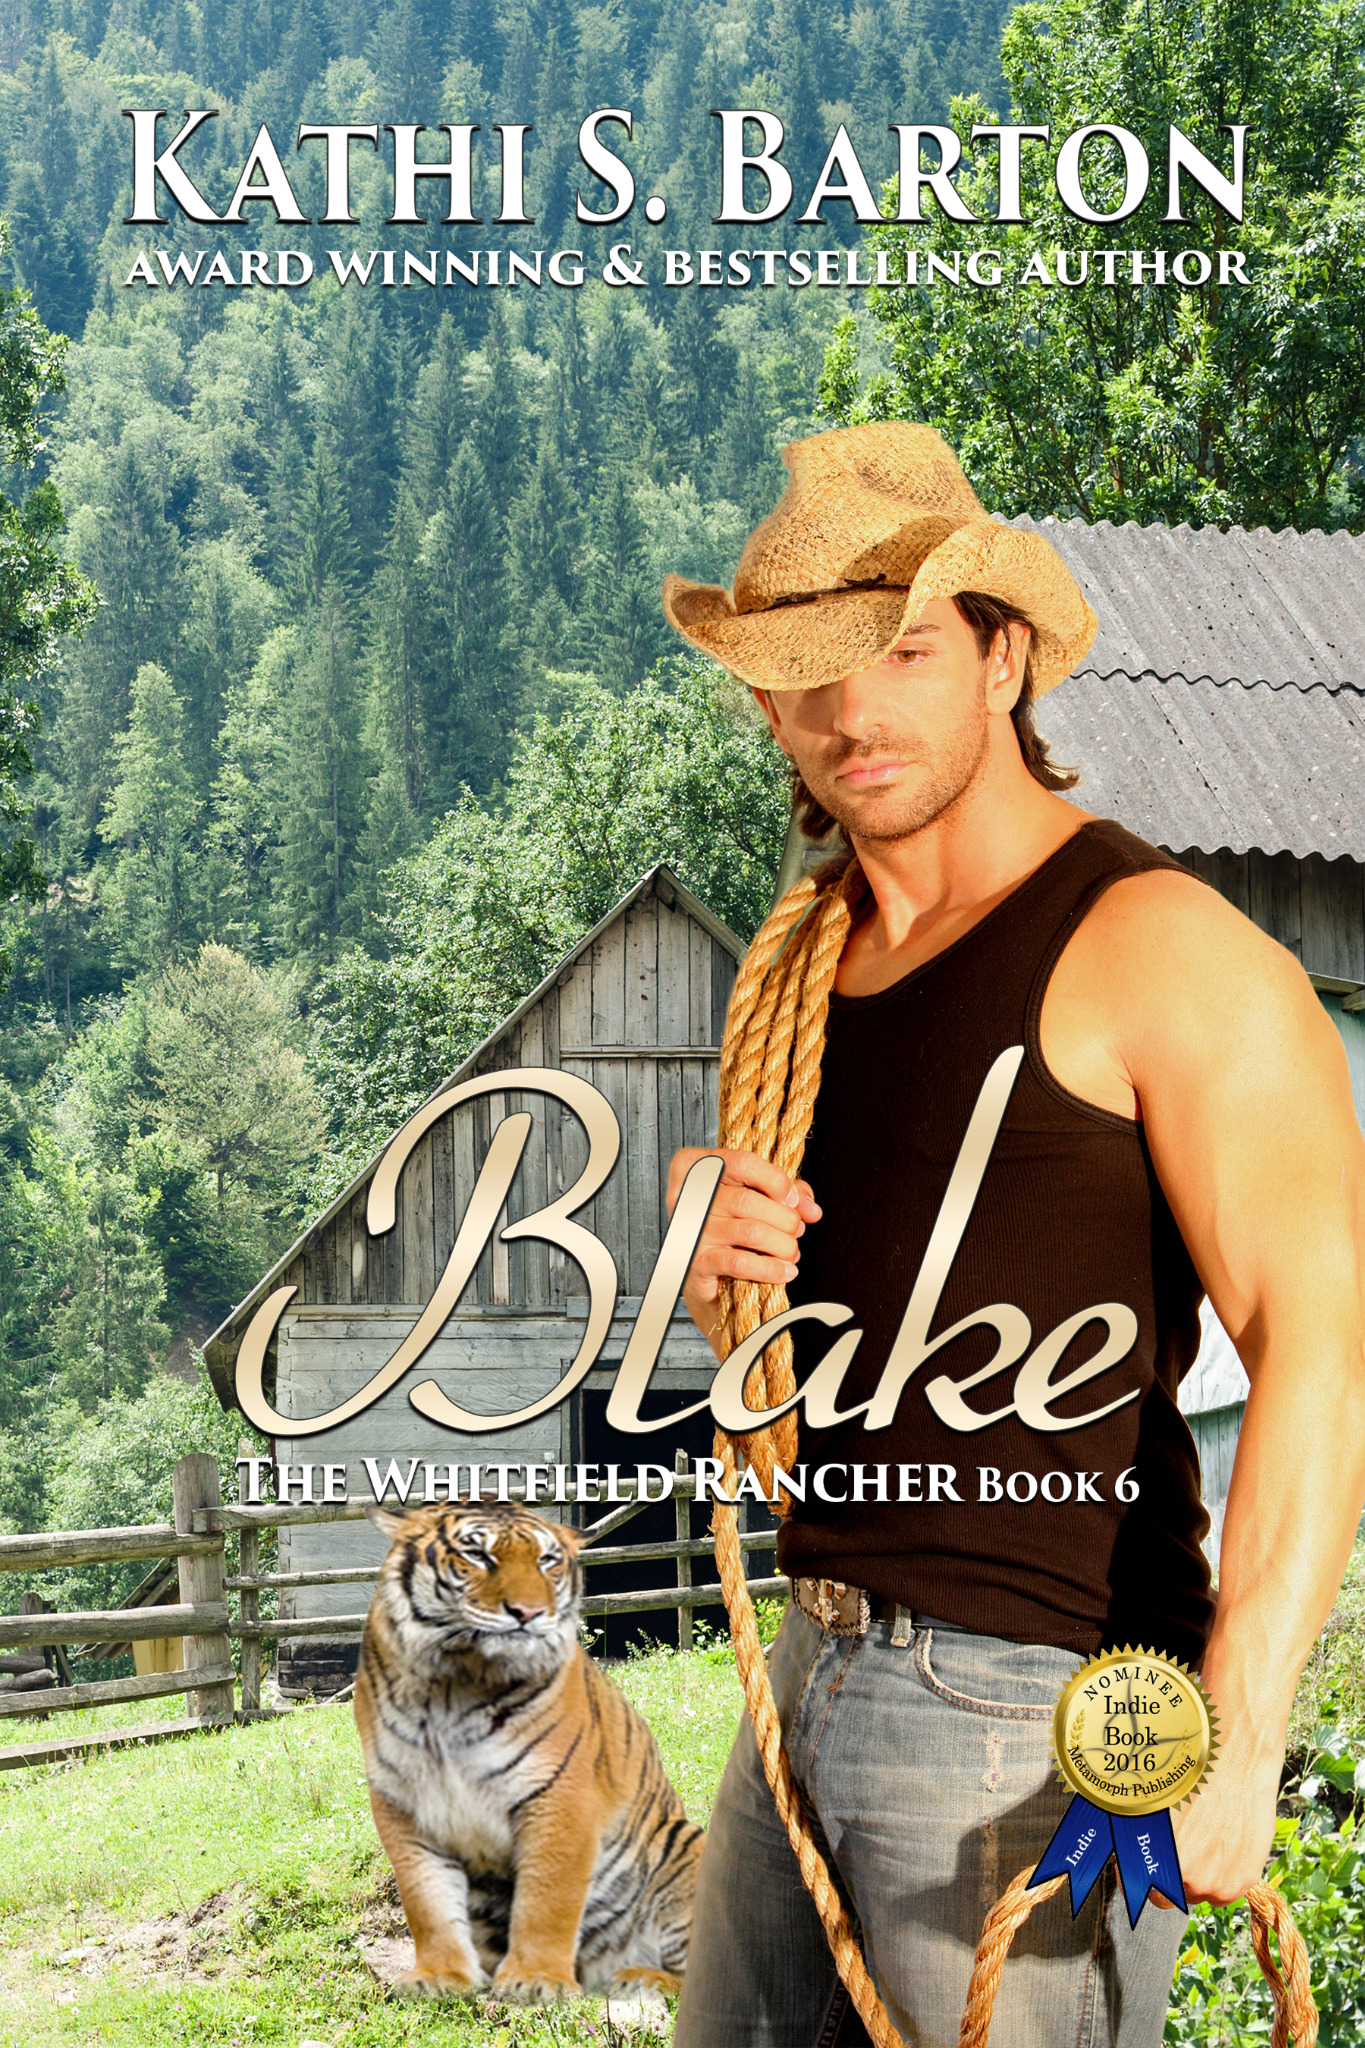 Blake - The Whitfield Rancher Book 6